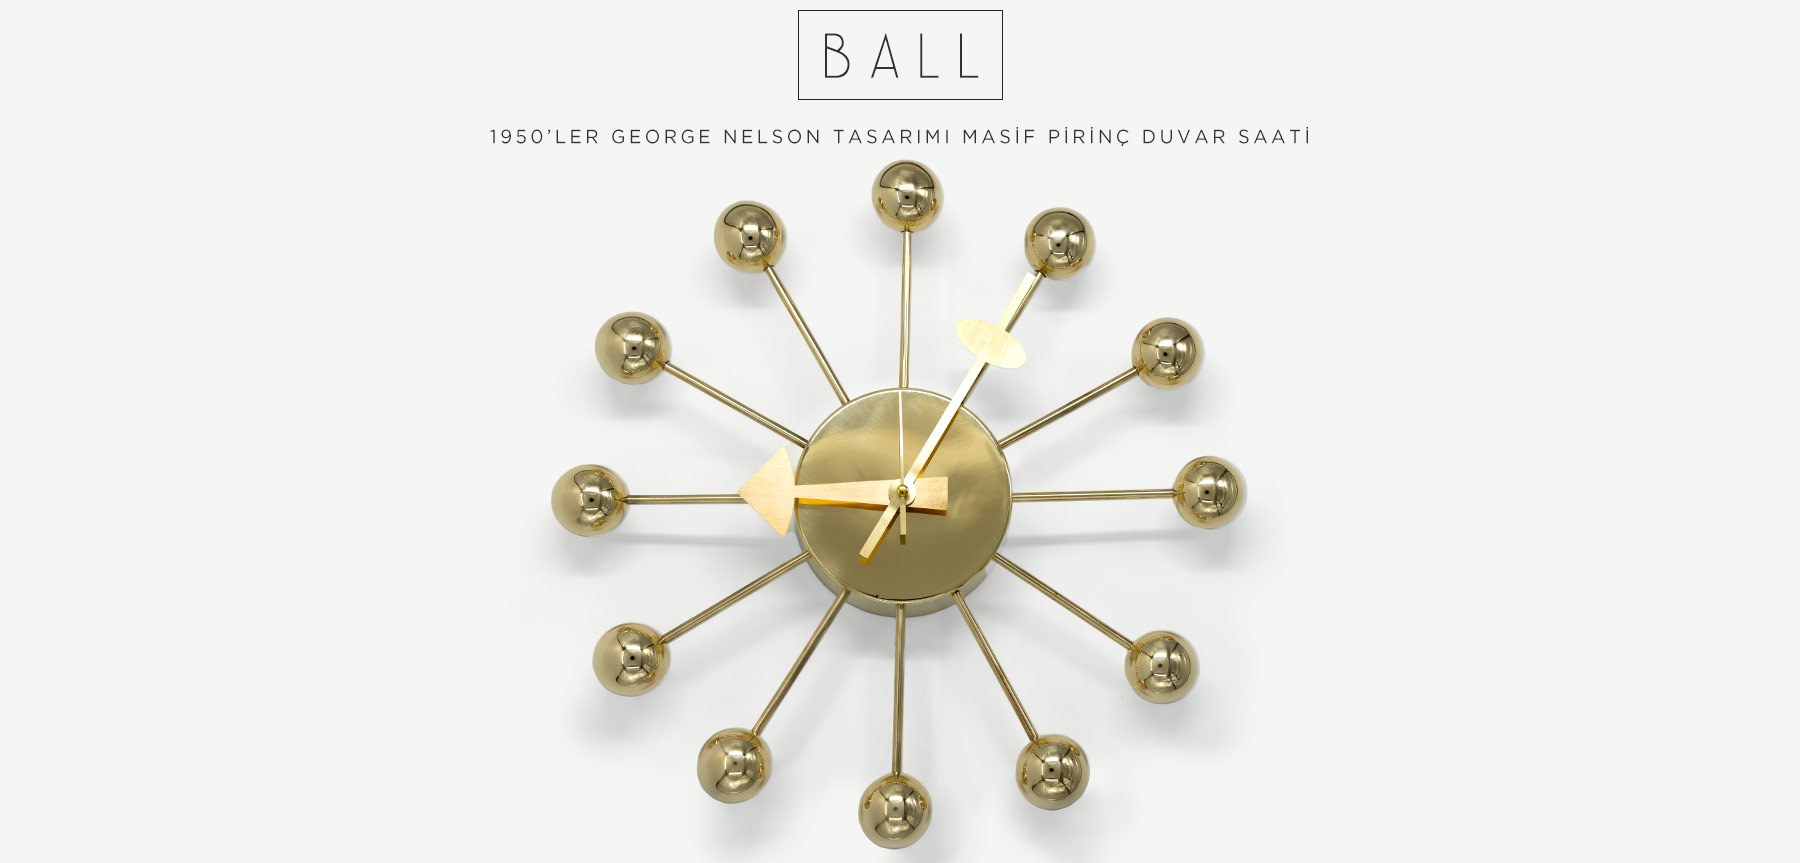 GEORGE NELSON PARLAK PİRİNÇ BALL CLOCK'in resmi